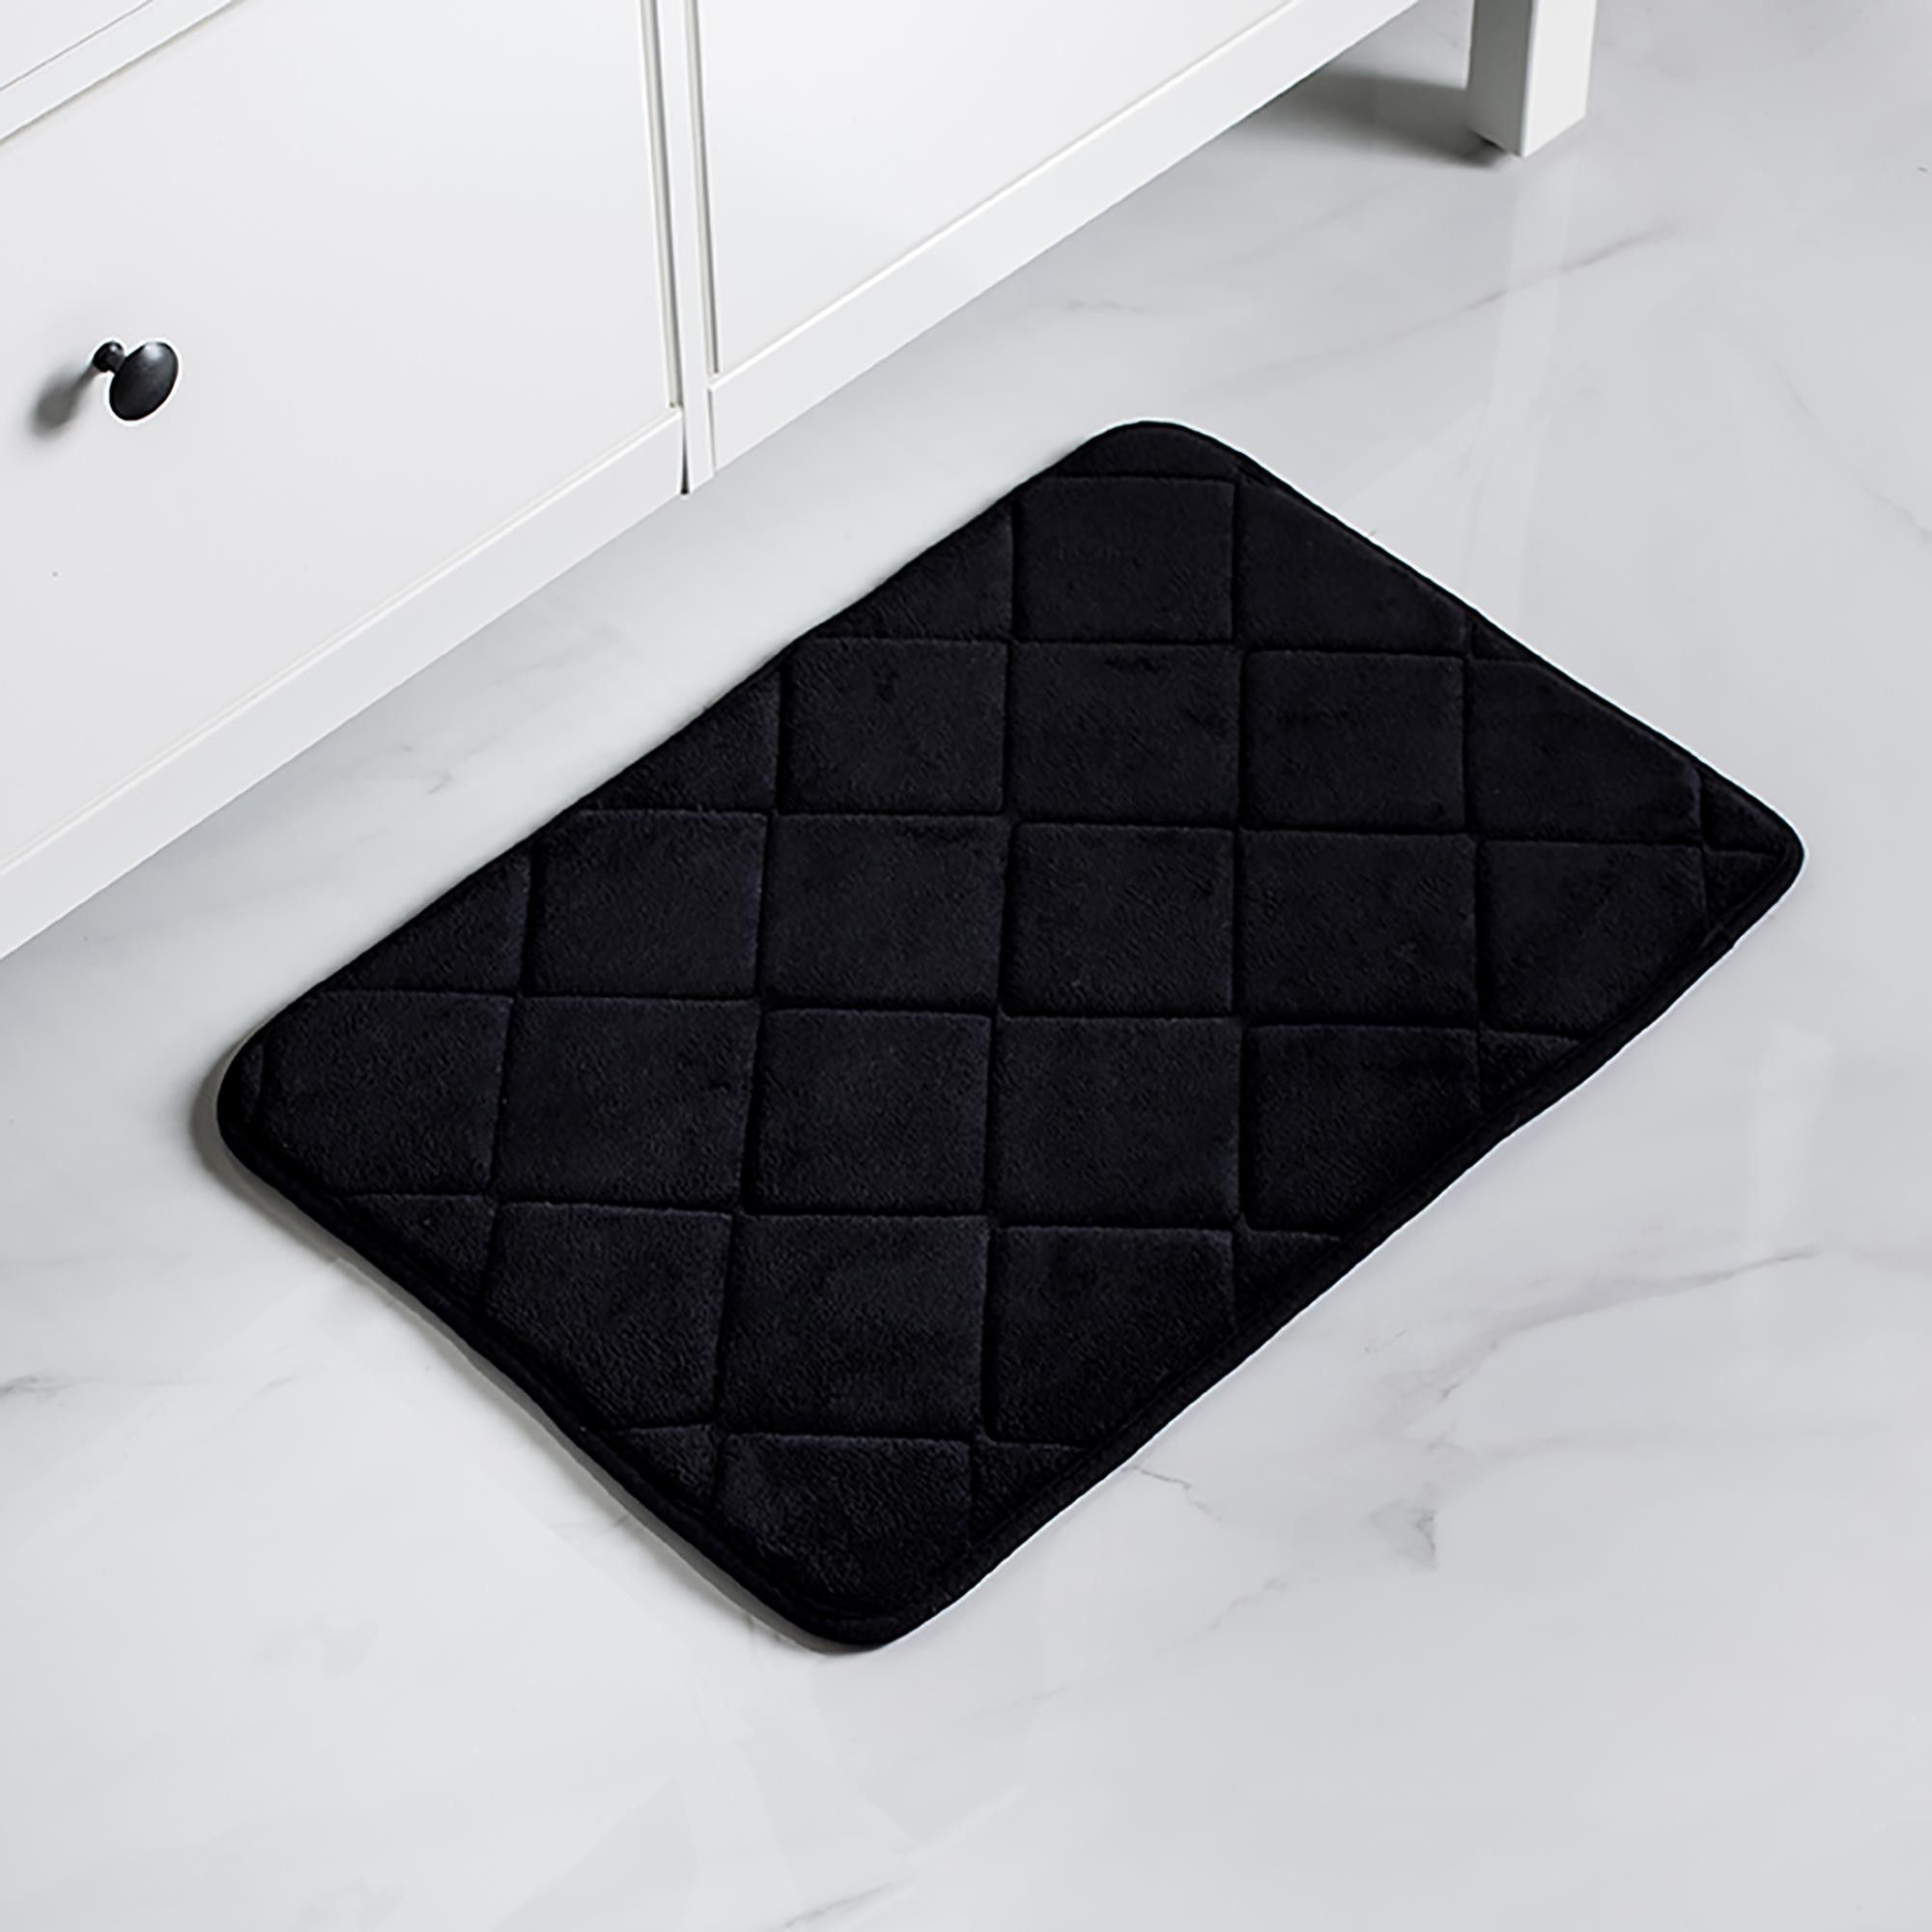 Harman Supreme Medium Microfiber Memory Foam Bathmat Black